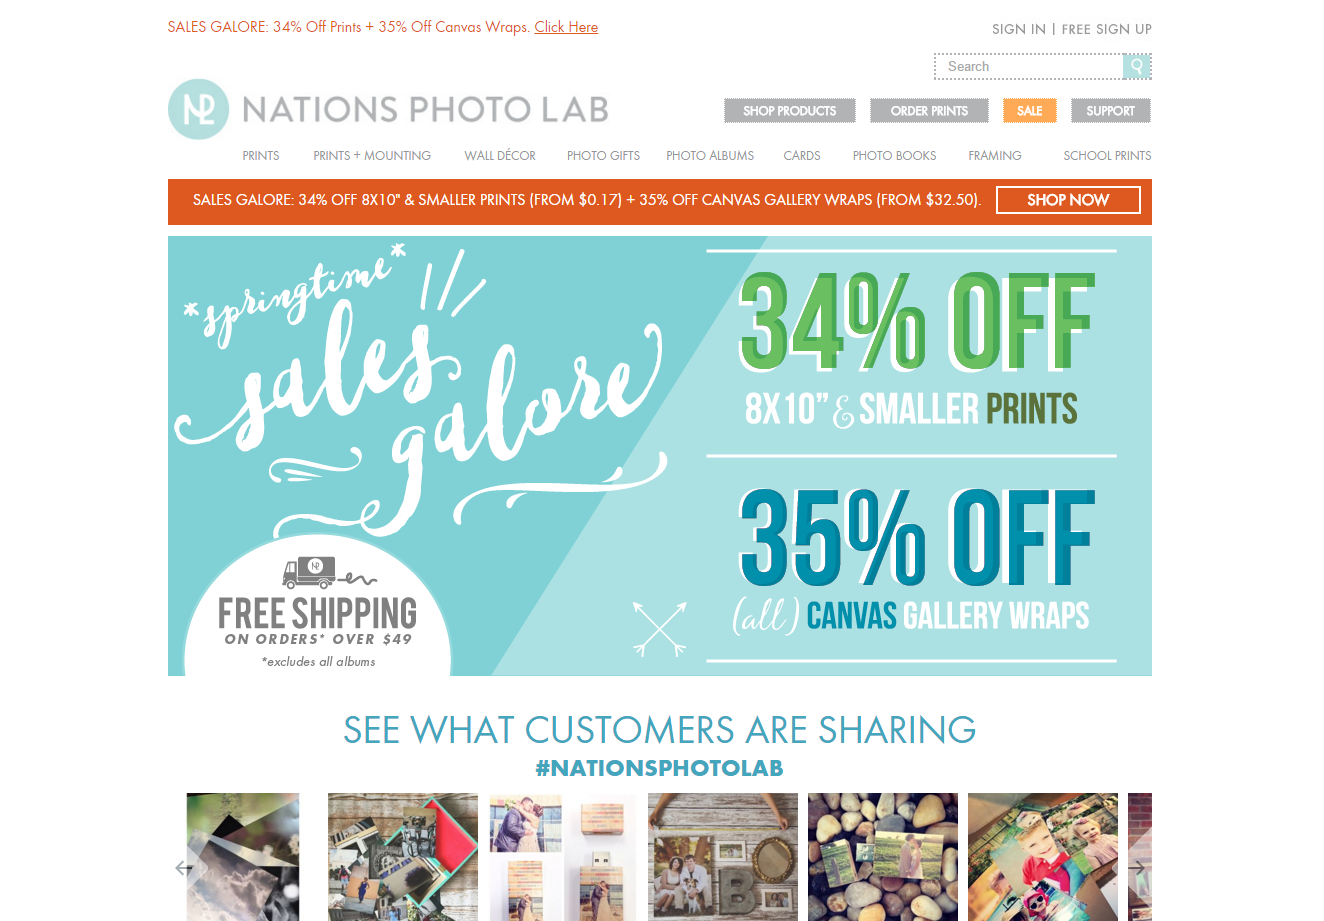 Jones Photo Blog - Official Site Nation photo lab review